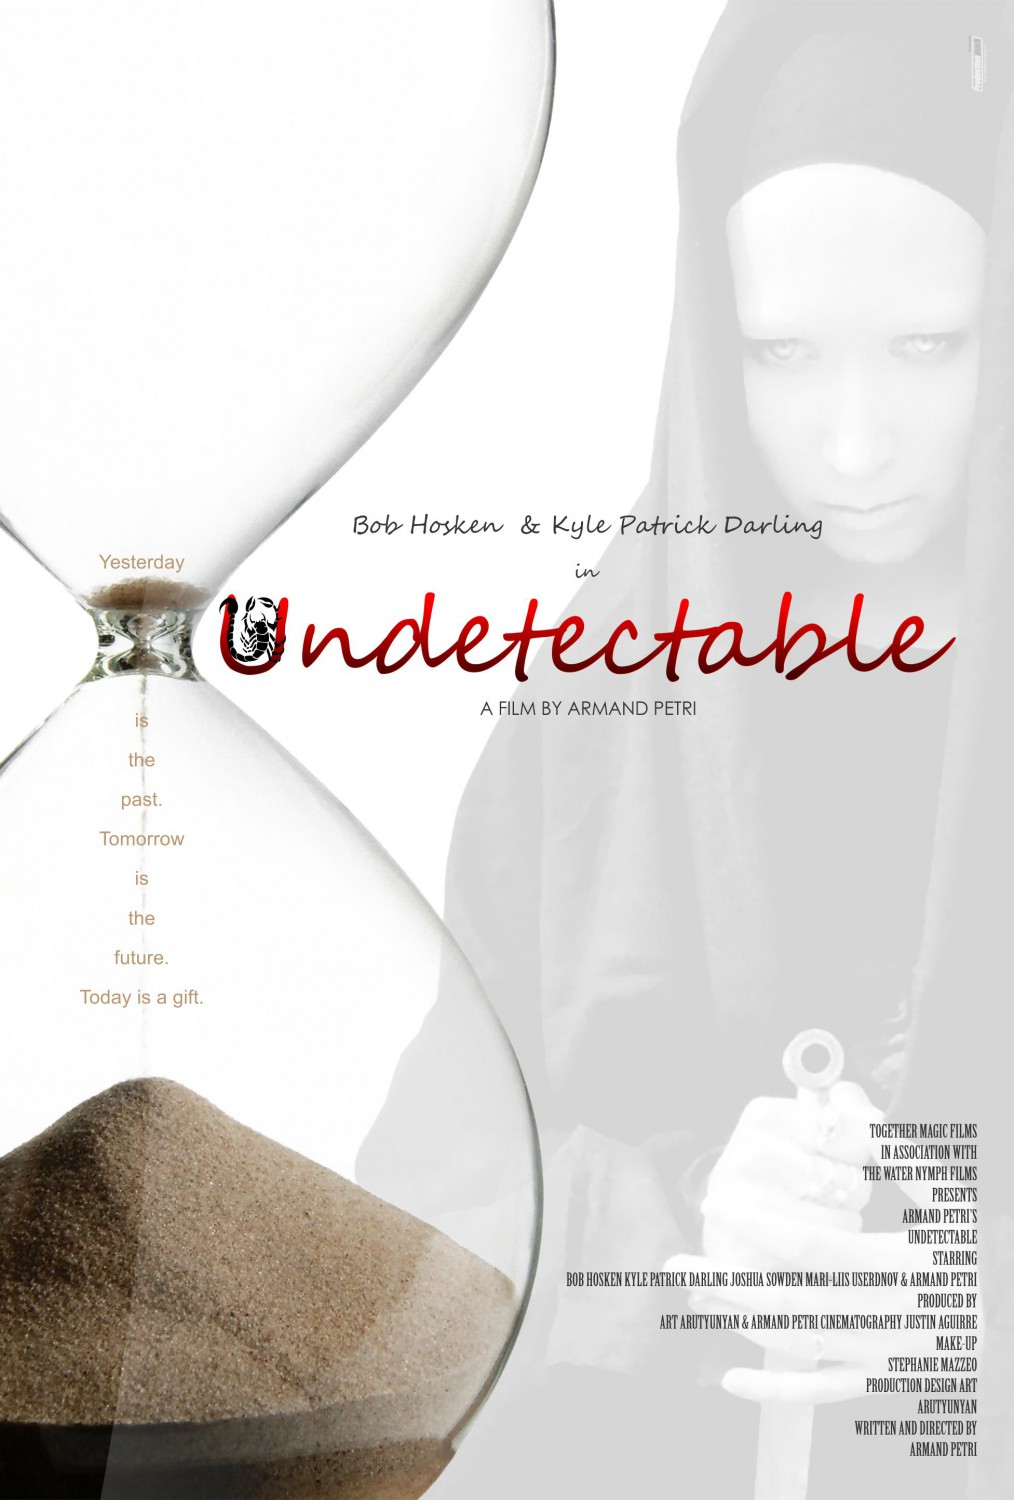 Productionmark-Services-Film-Poster-Design-Short-Film-Undetectable